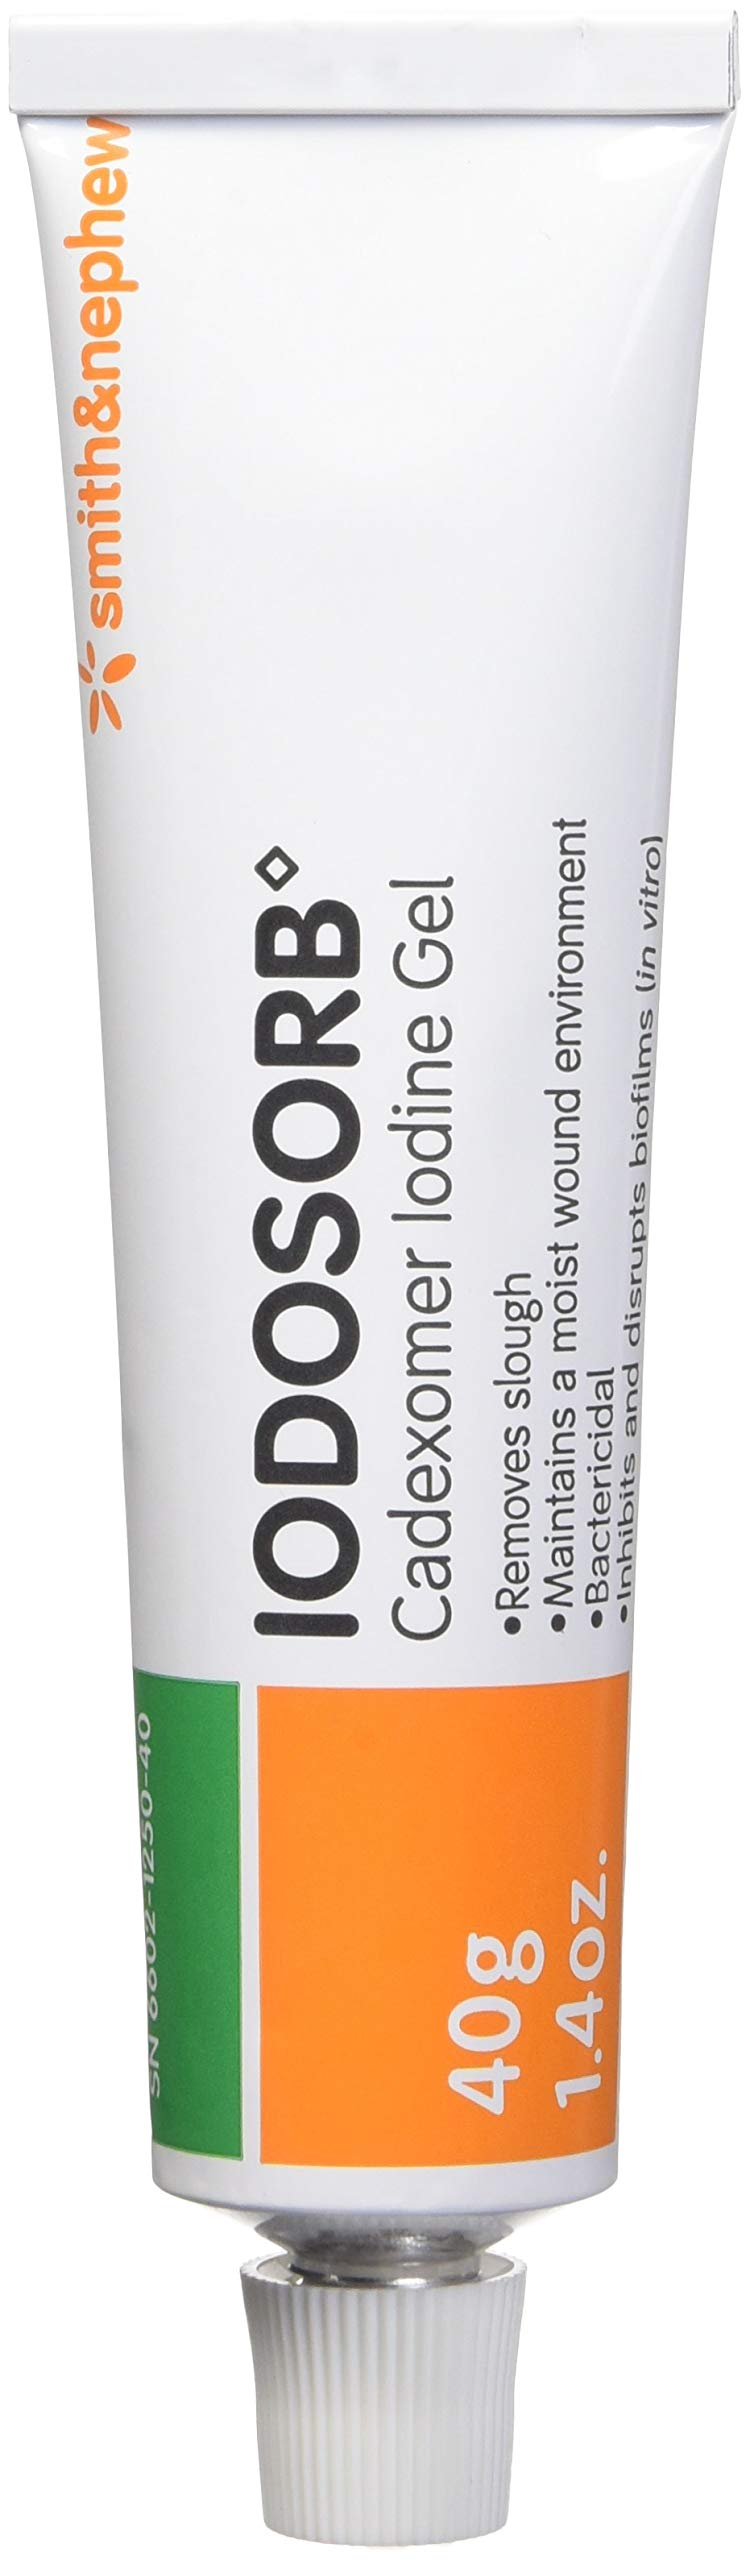 Smith and Nephew Iodosorb Gel Tube 40g 6602125040 by Iodosorb